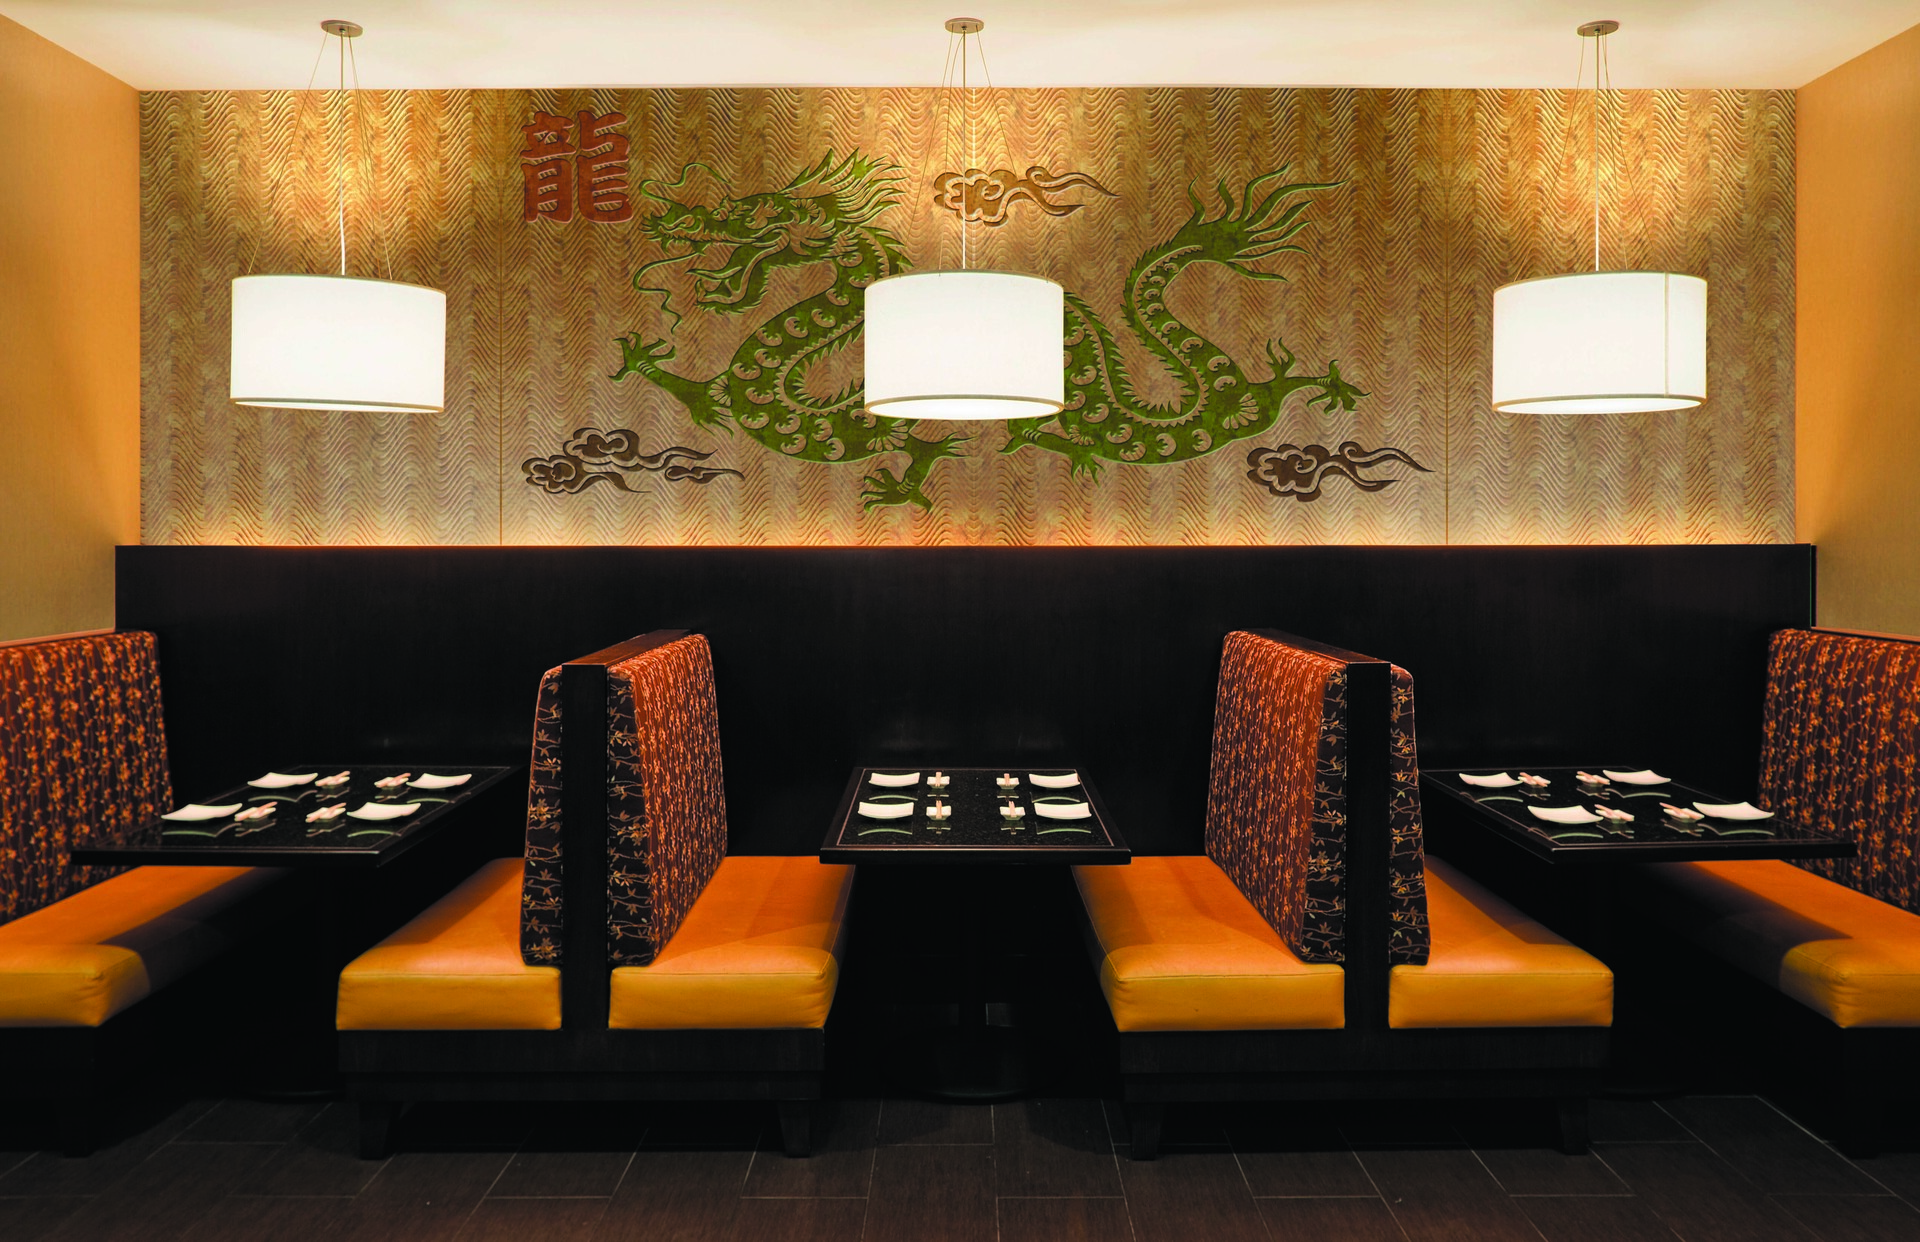 Add beauty and life to any wall--this restaurant has a dragon graphic to create the perfect interior design.  Fusion can elevate your brand or personalize your home on any budget. By combining our ever-expanding line of graphics or your own artwork with our more than a dozen substrate options, you can make a unique, custom design perfect for your business or home.   You can use Fusion for such applications as wall art, divider panels, displays, and large format murals allowing you to stand out from the crowd. Your imagination is the limit!